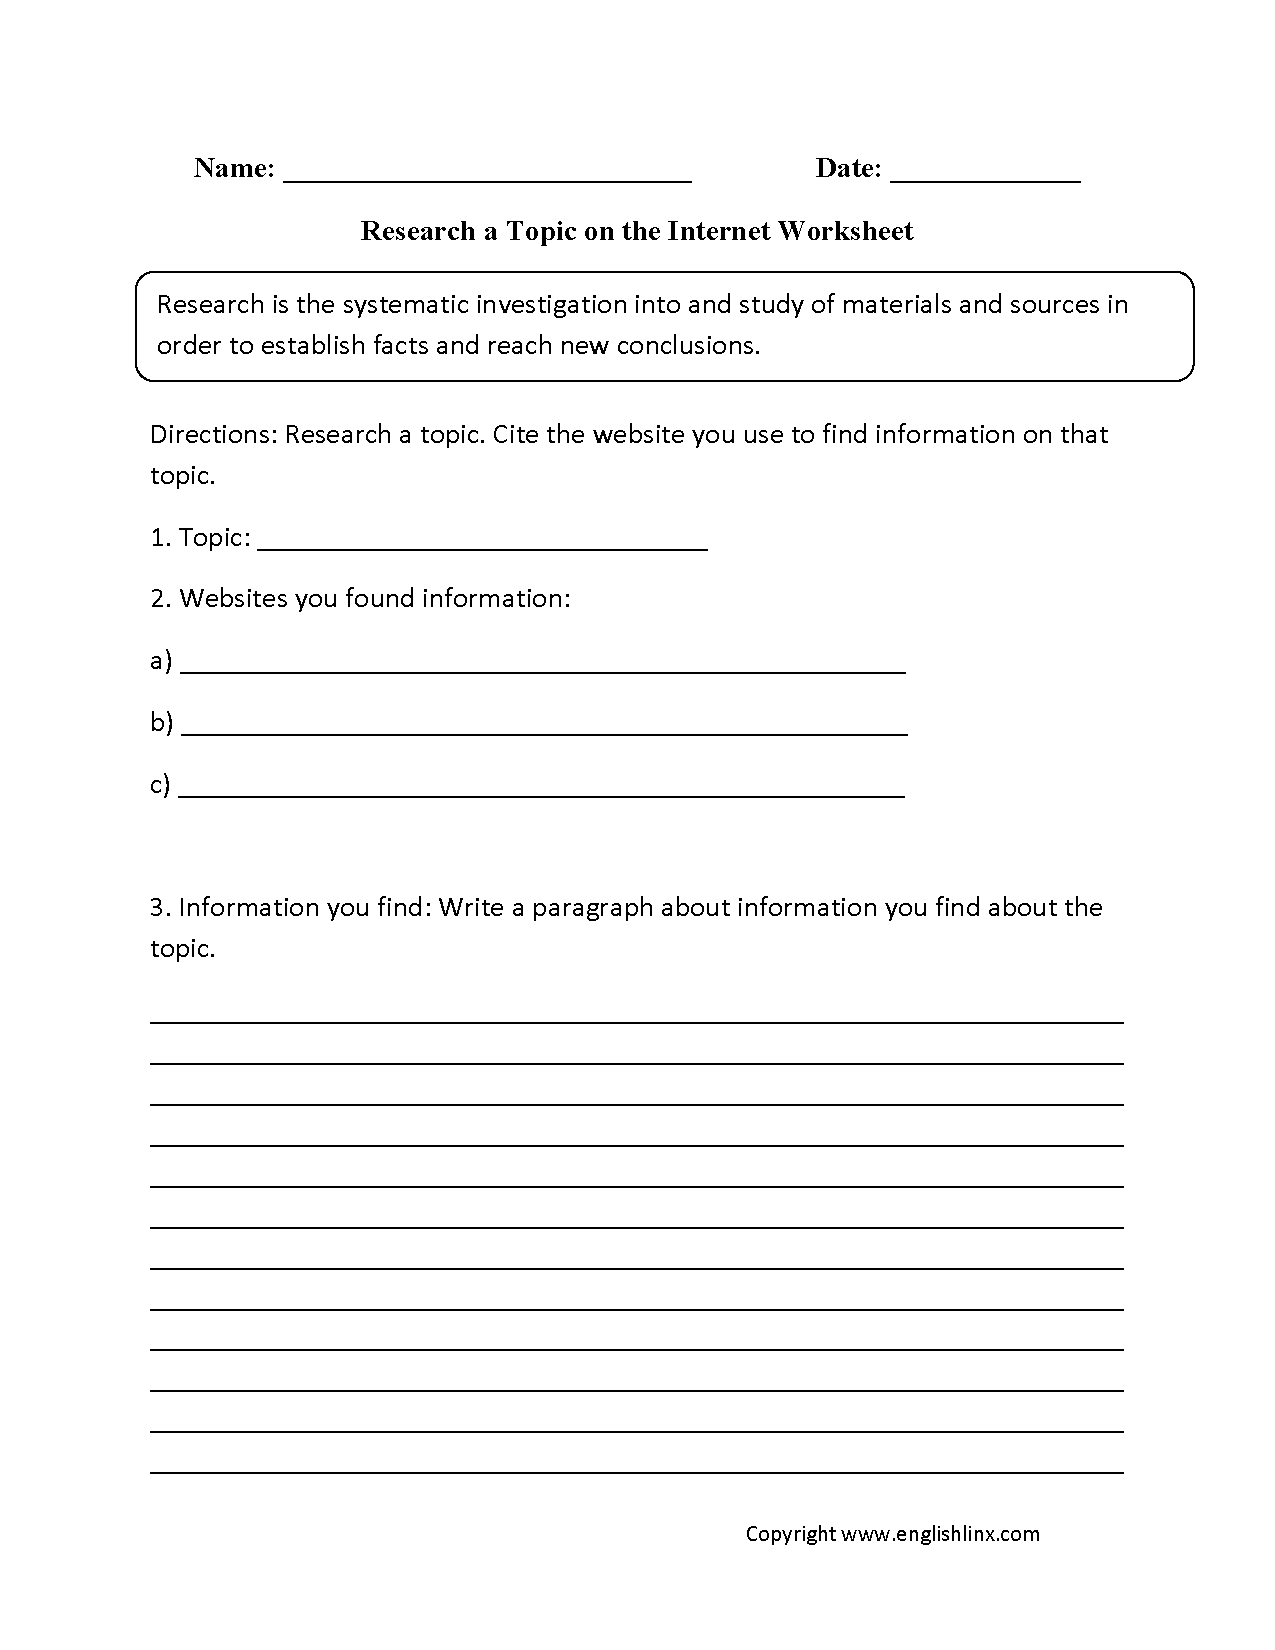 Aldiablosus  Winning Englishlinxcom  Research Worksheets With Extraordinary On The Internet Worksheet With Endearing Color By Word Worksheet Also Punctuation Worksheets Grade  In Addition Pompeii Worksheets And Basic Math Practice Worksheets As Well As Free Printable Preschool Worksheets Tracing Additionally Theme Worksheets Th Grade From Englishlinxcom With Aldiablosus  Extraordinary Englishlinxcom  Research Worksheets With Endearing On The Internet Worksheet And Winning Color By Word Worksheet Also Punctuation Worksheets Grade  In Addition Pompeii Worksheets From Englishlinxcom